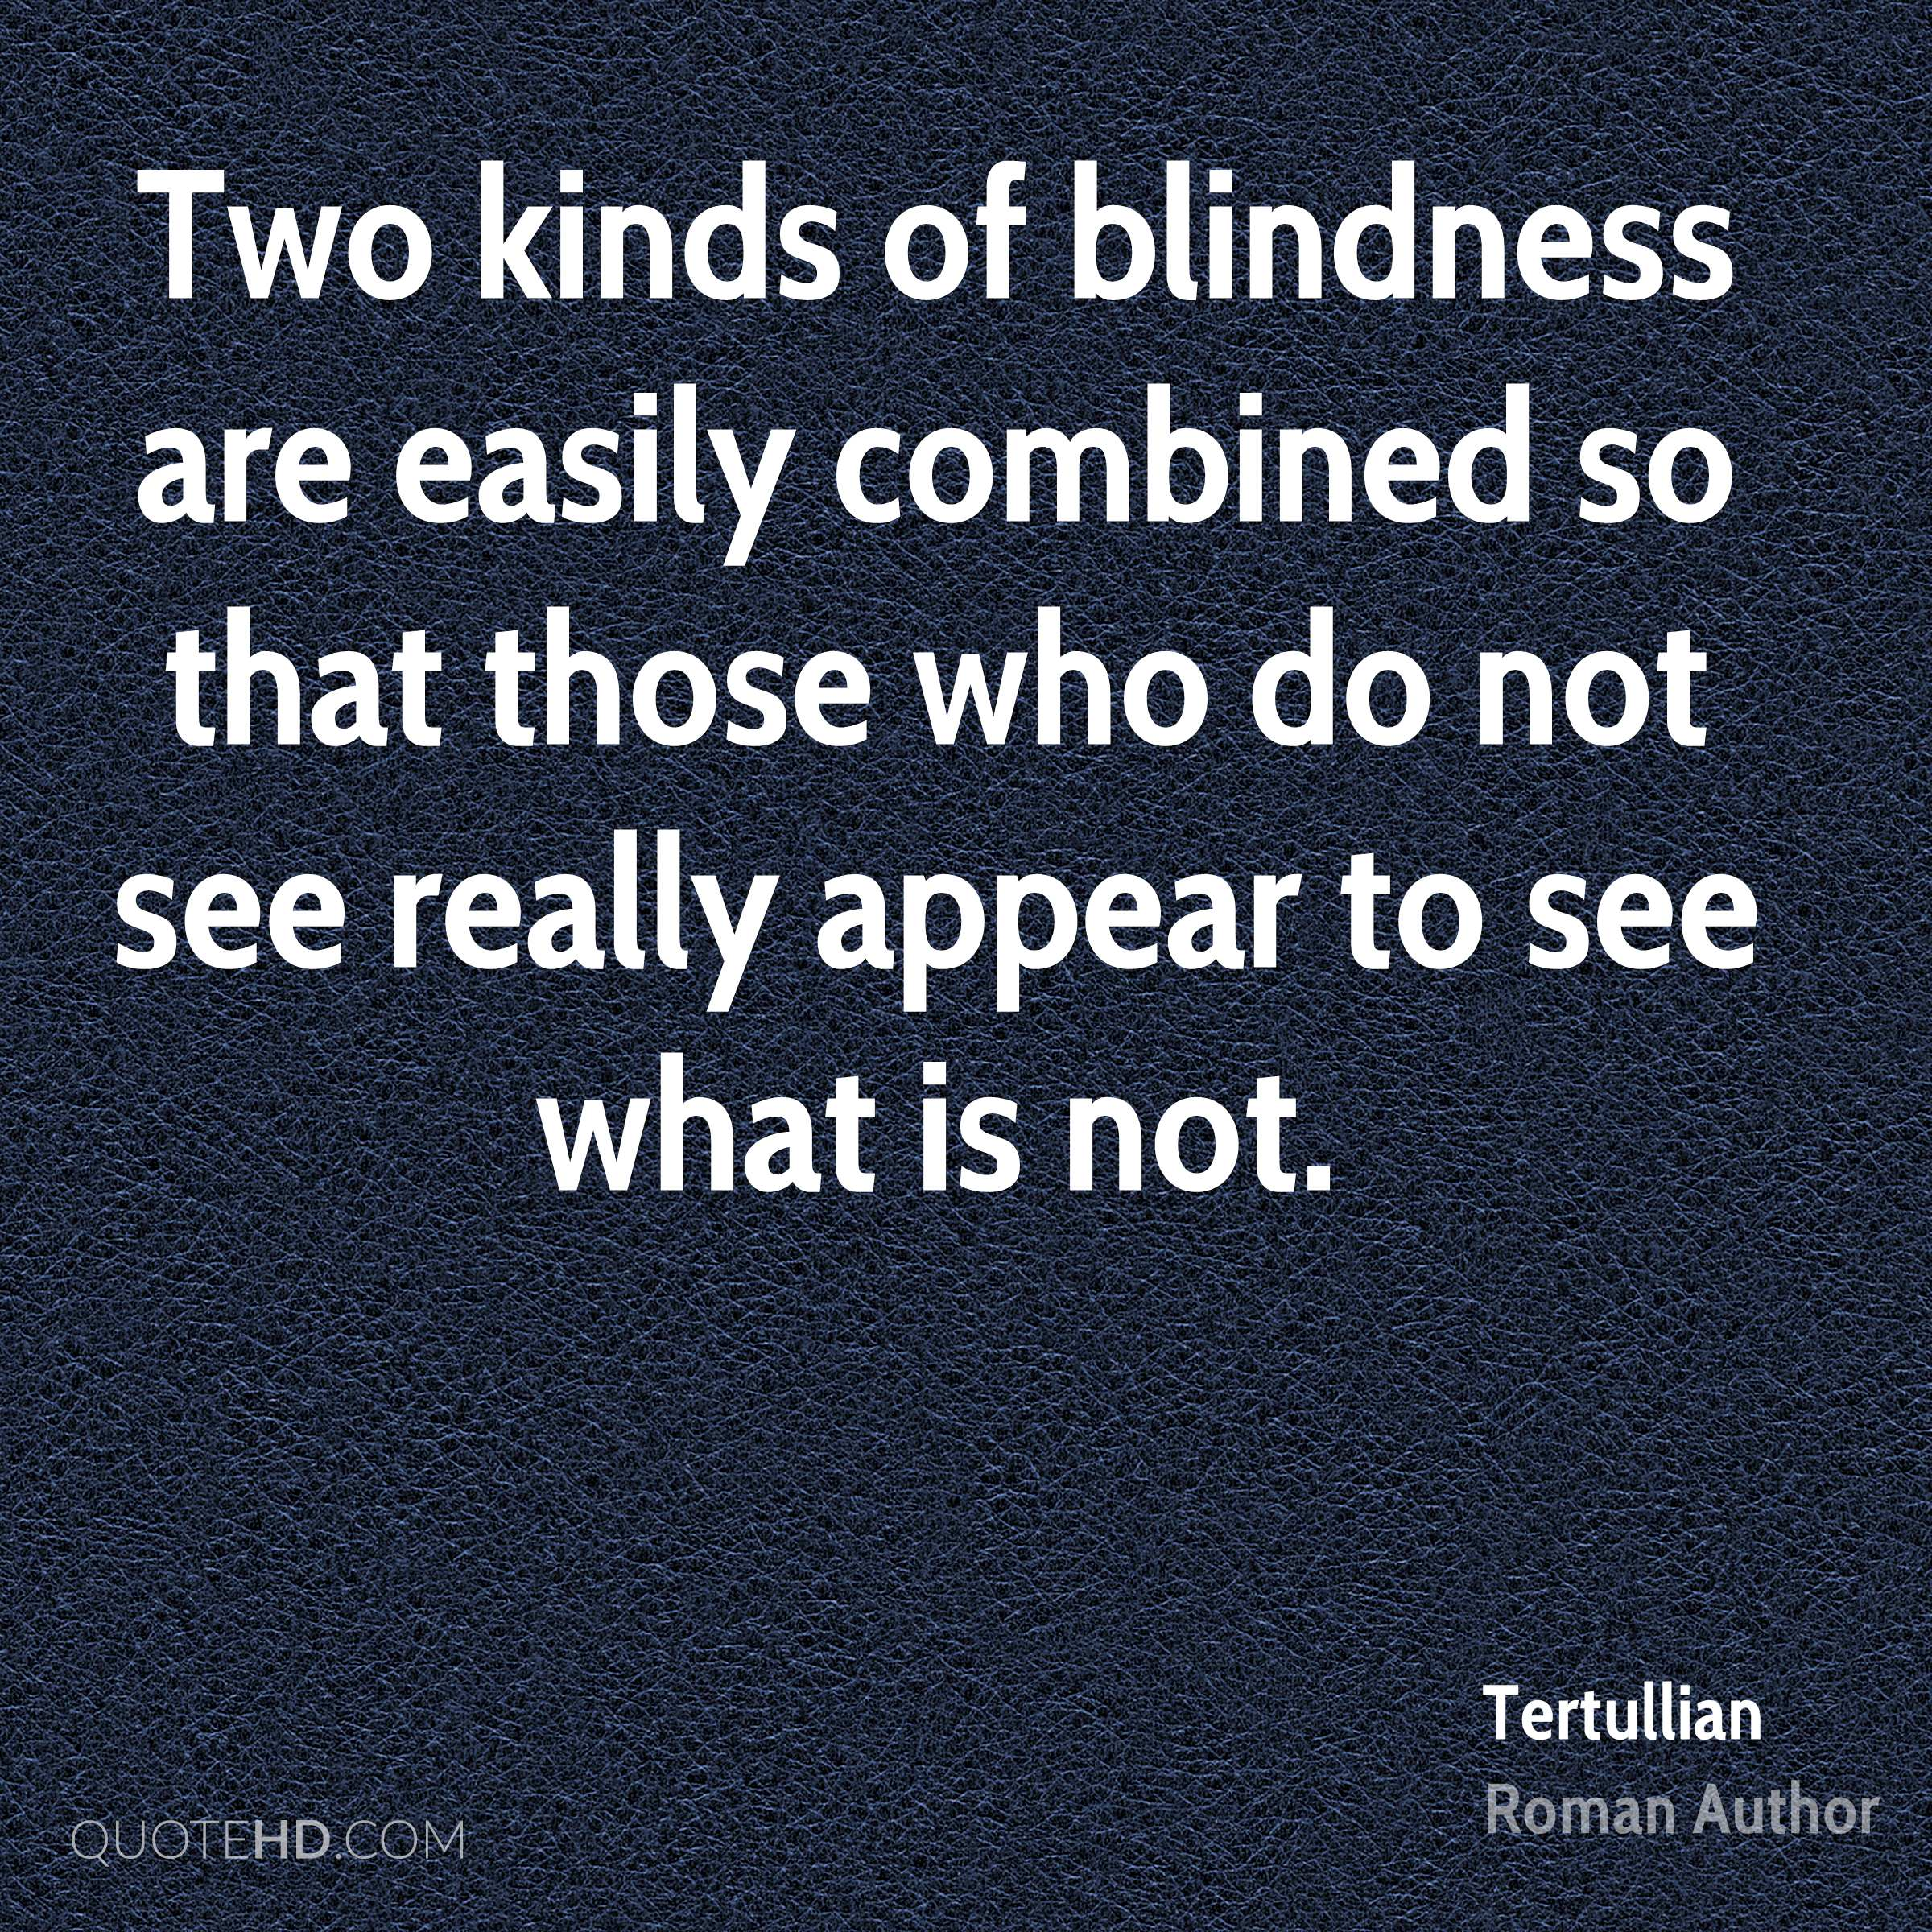 Two kinds of blindness are easily combined so that those who do not see really appear to see what is not.